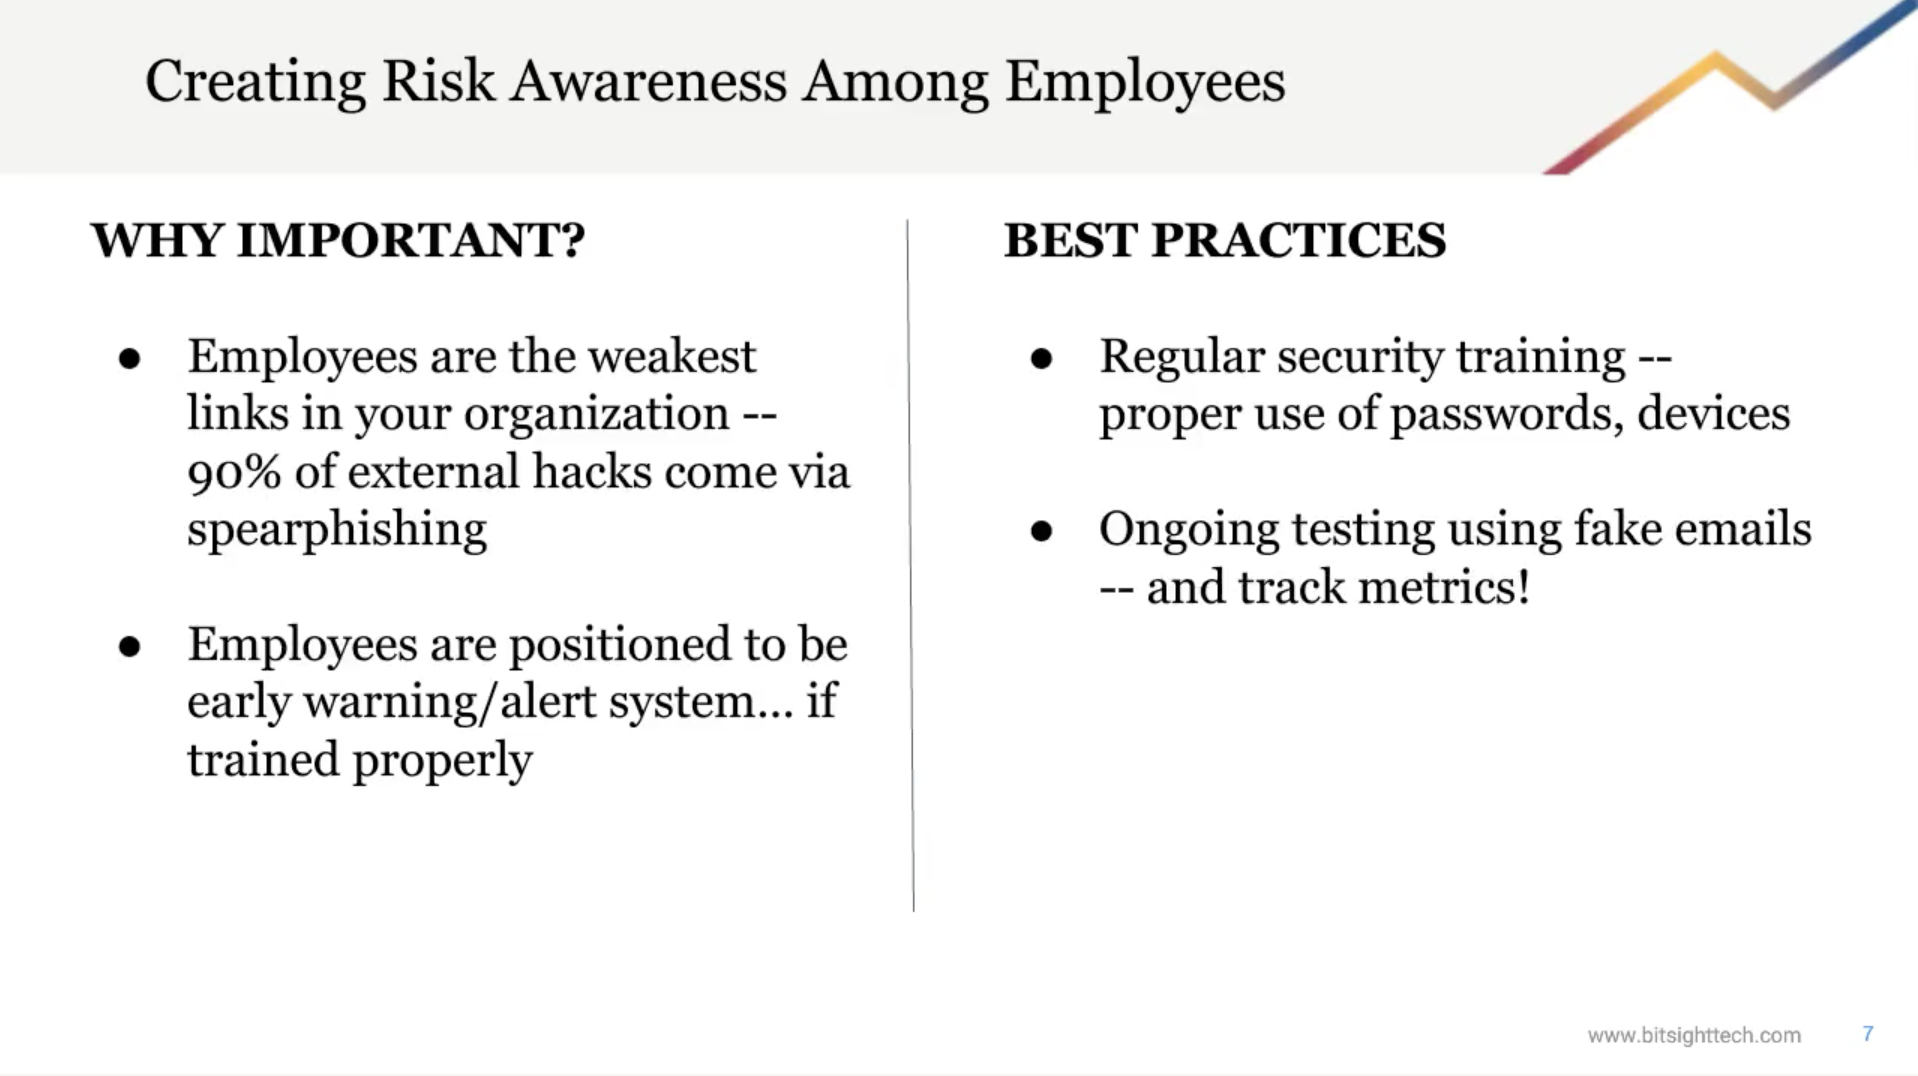 Cybersecurity & Third-Party Risk Management Resources | BitSight